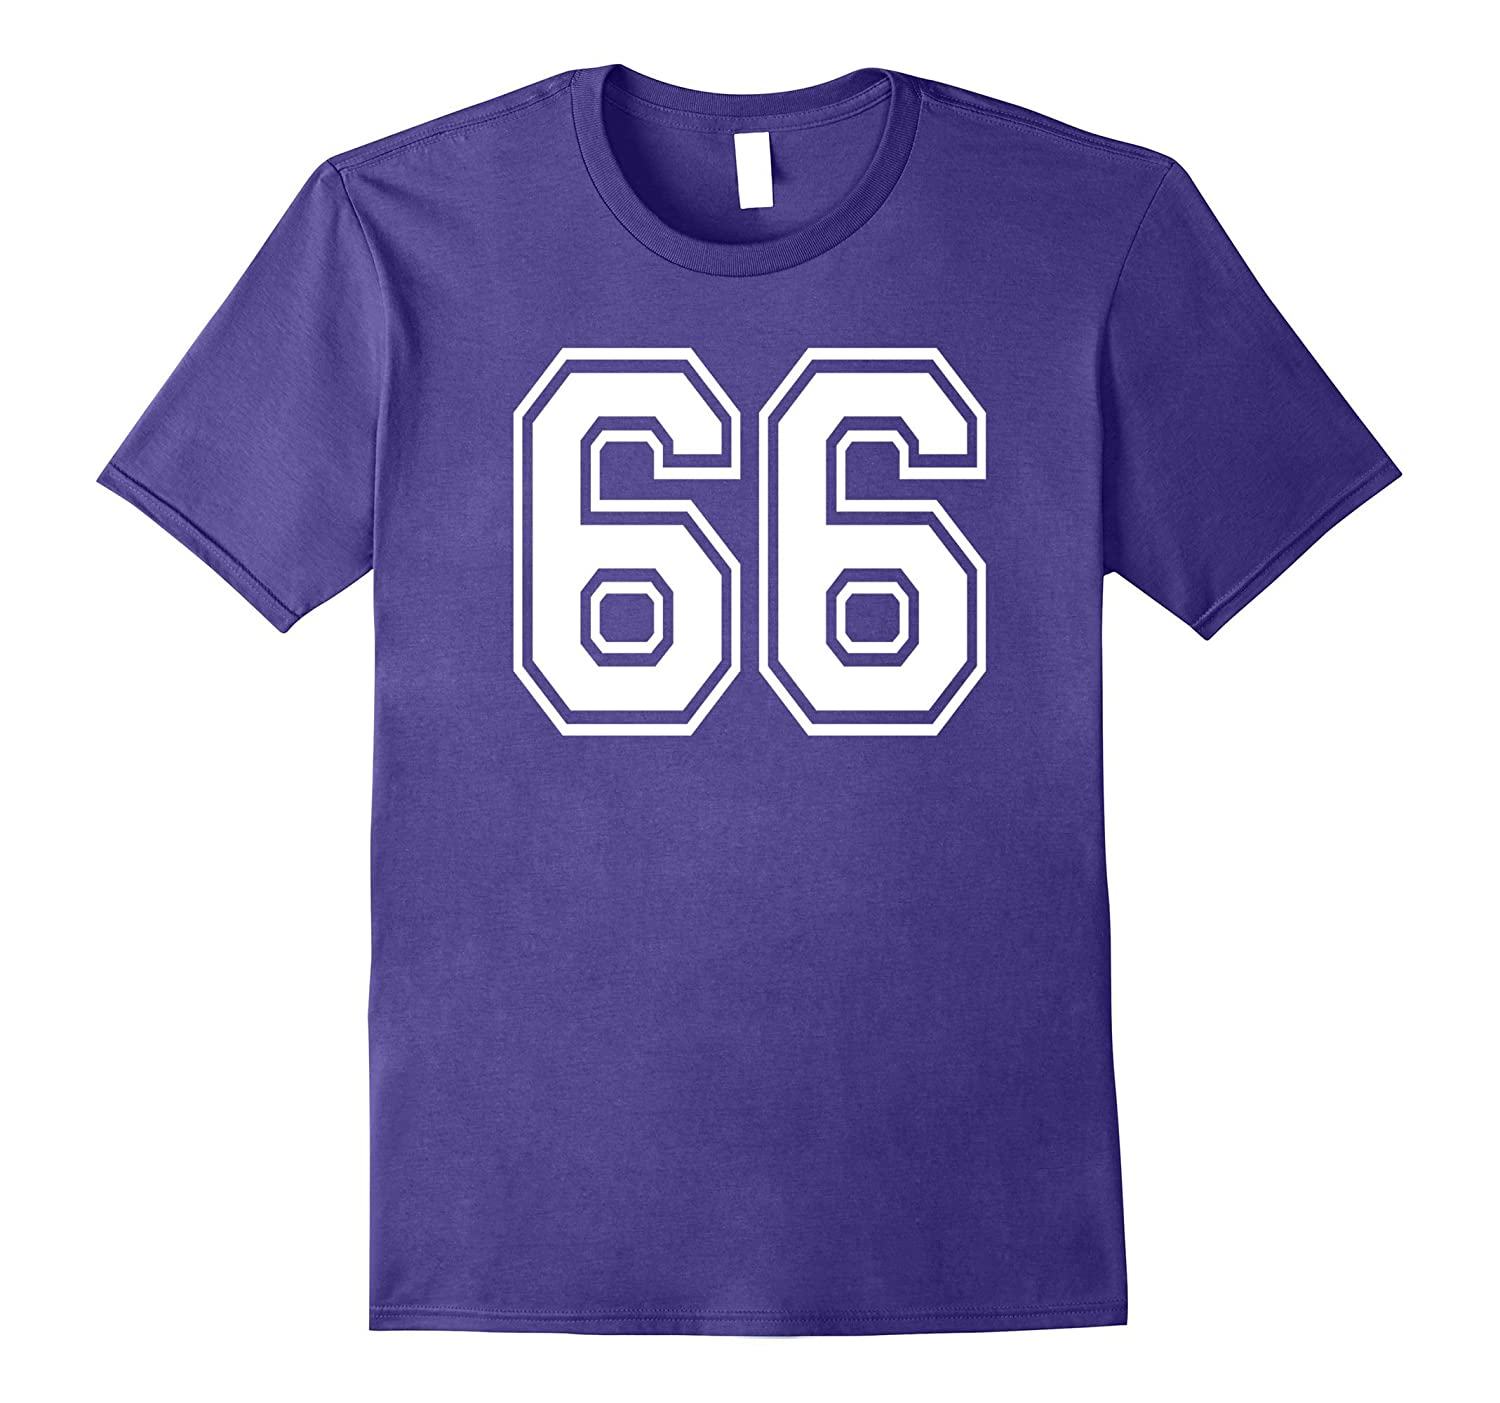 #66 Numbered College Sports Team T-Shirts front and back-FL